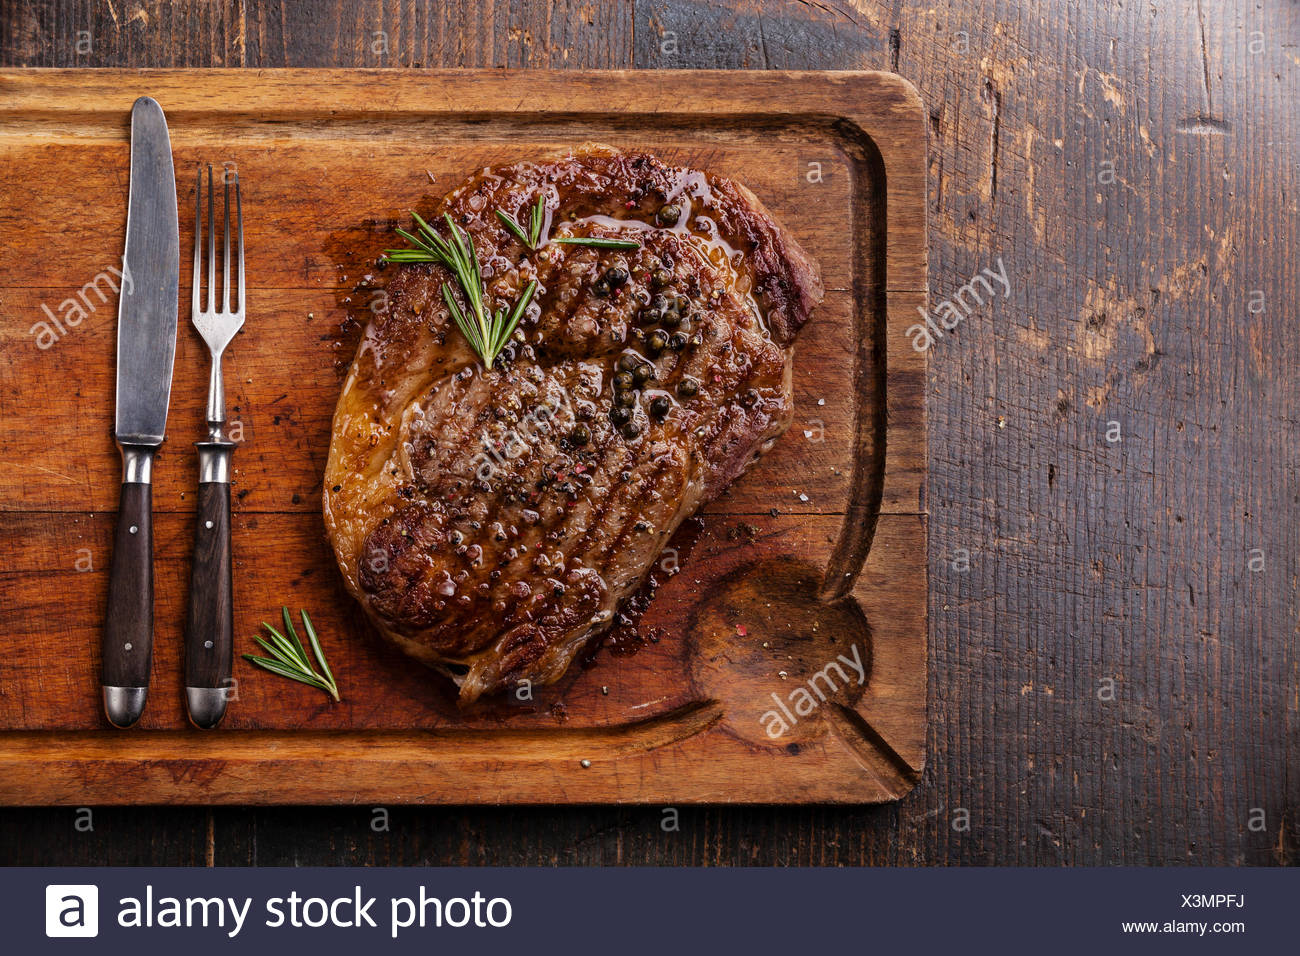 Grilled Black Angus Steak Ribeye and fork and knife on meat cutting board on dark wooden background Stock Photo